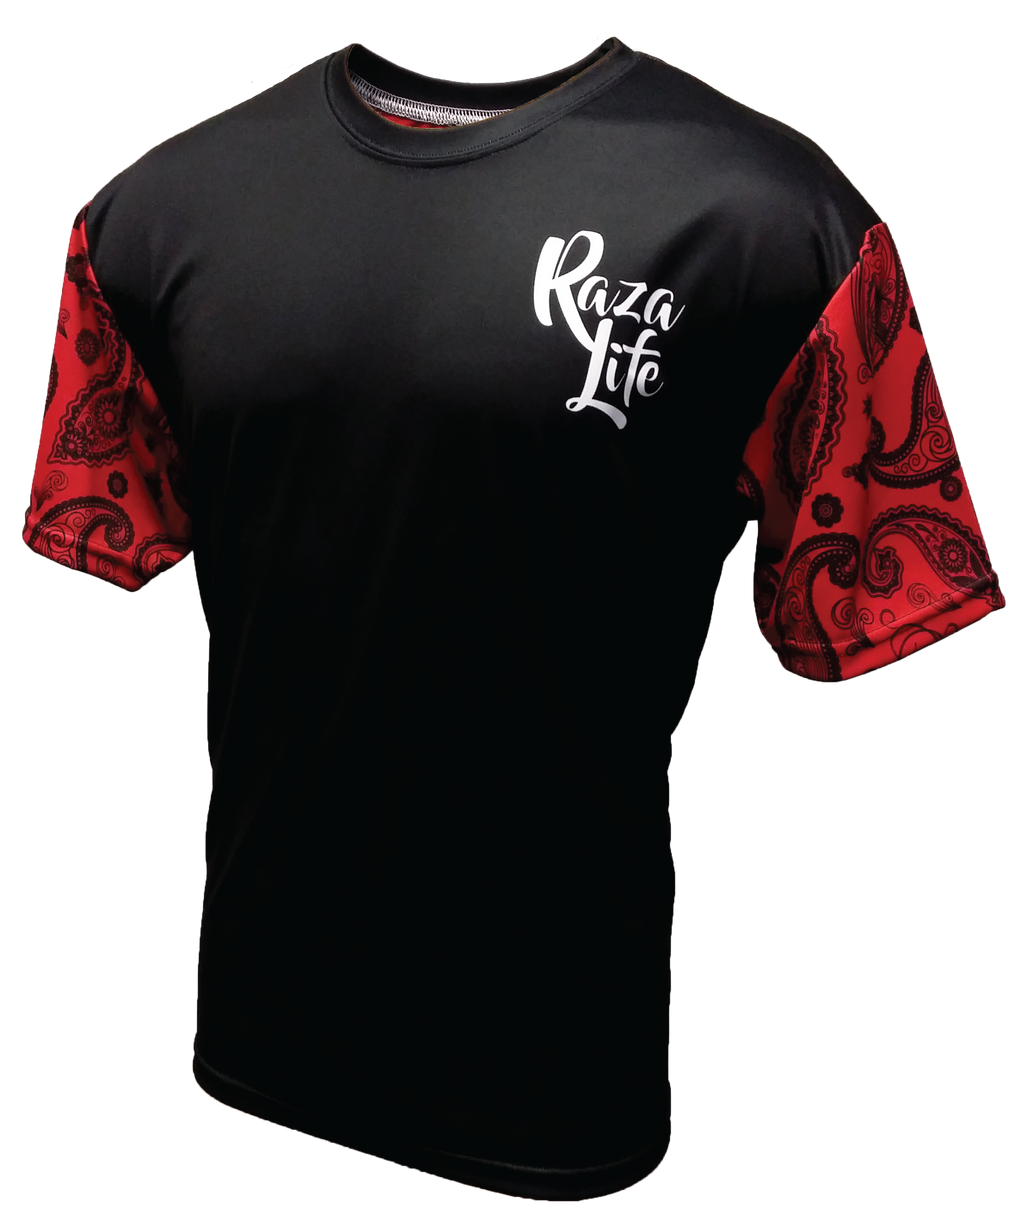 Cashmir Tech Shirt - RazaLife - Tech Shirt - Razalife - RazaLife - paintball - custom - jerseys - sports - uniforms - woodsball - softball - baseball - basketball - soccer